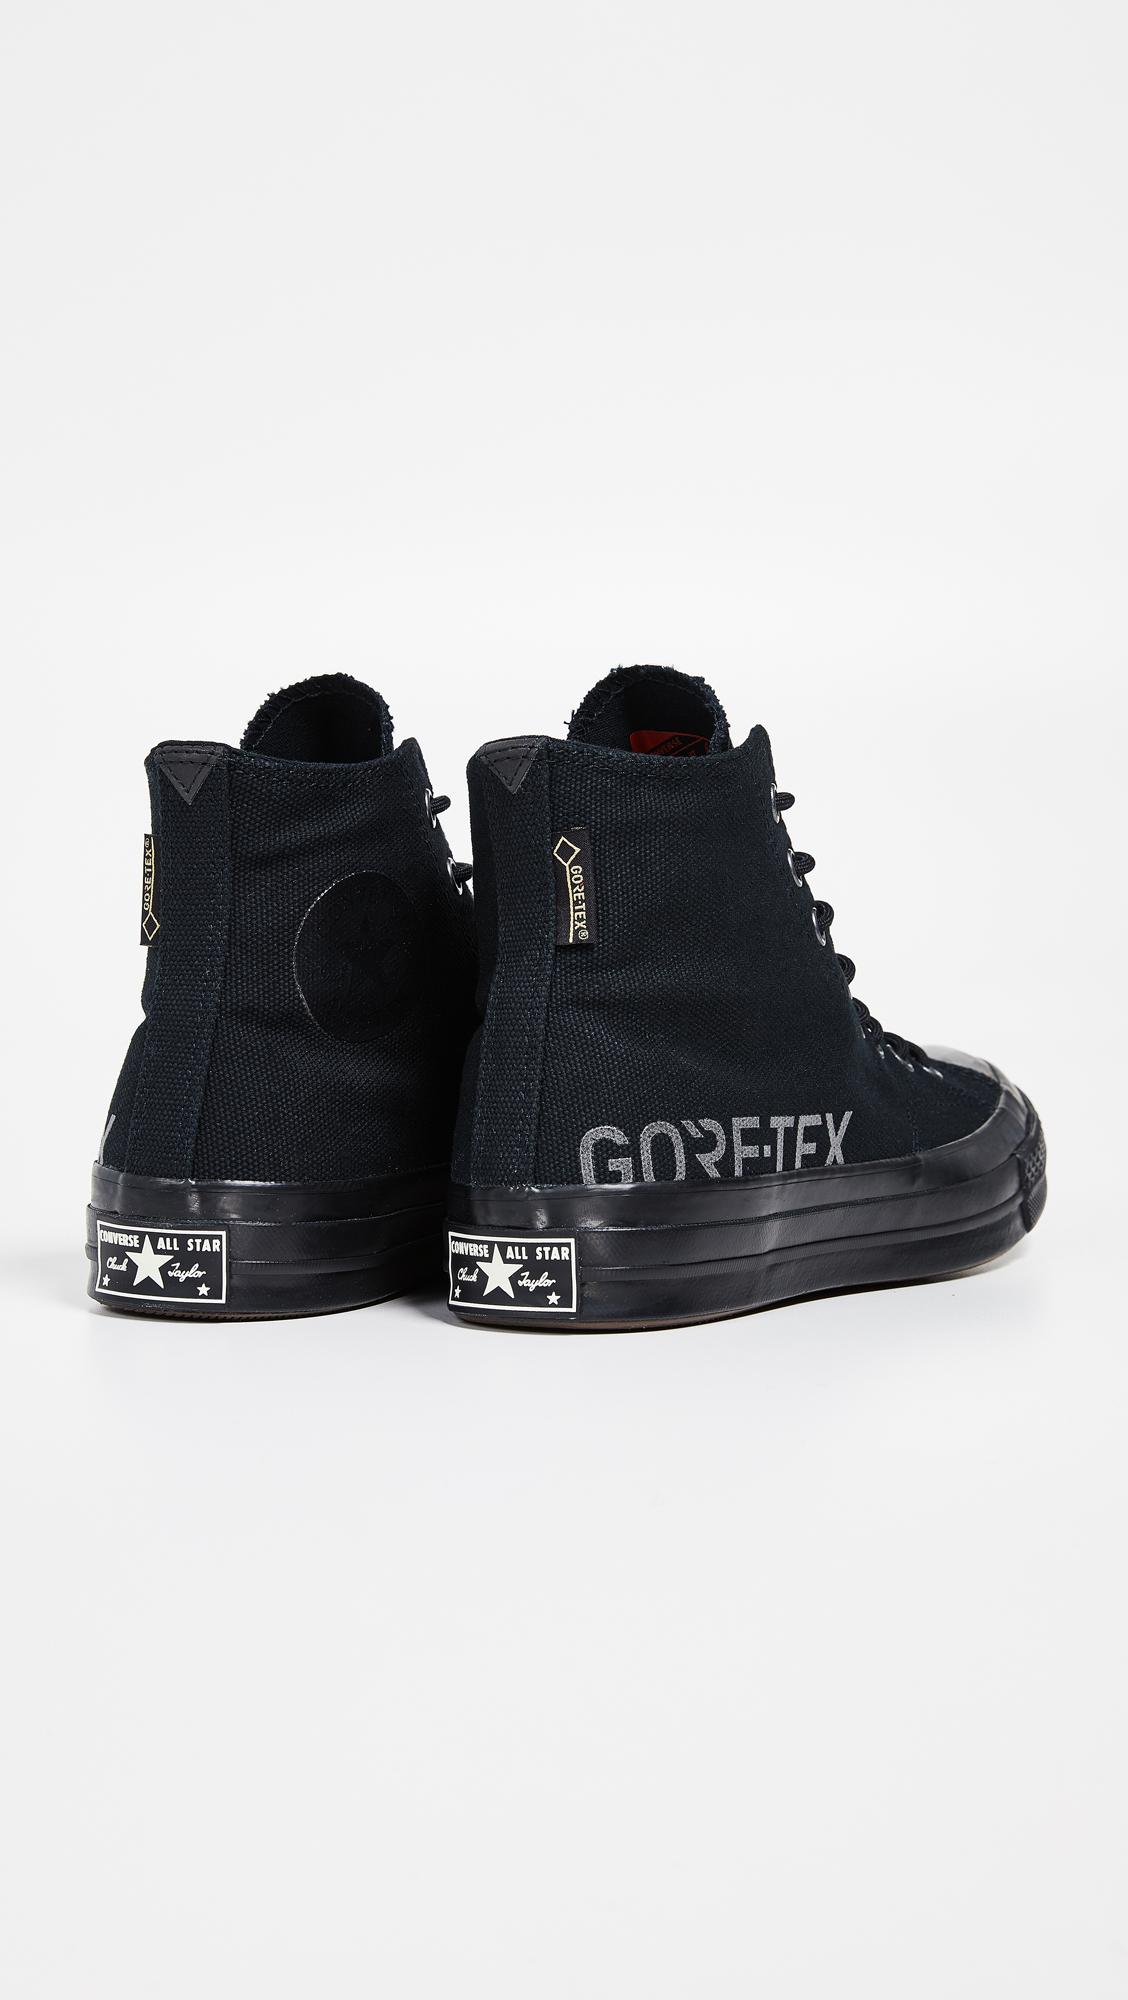 f9a8ff2771b Converse Chuck 70 Goretex Waterproof High Top Sneakers in Black for ...